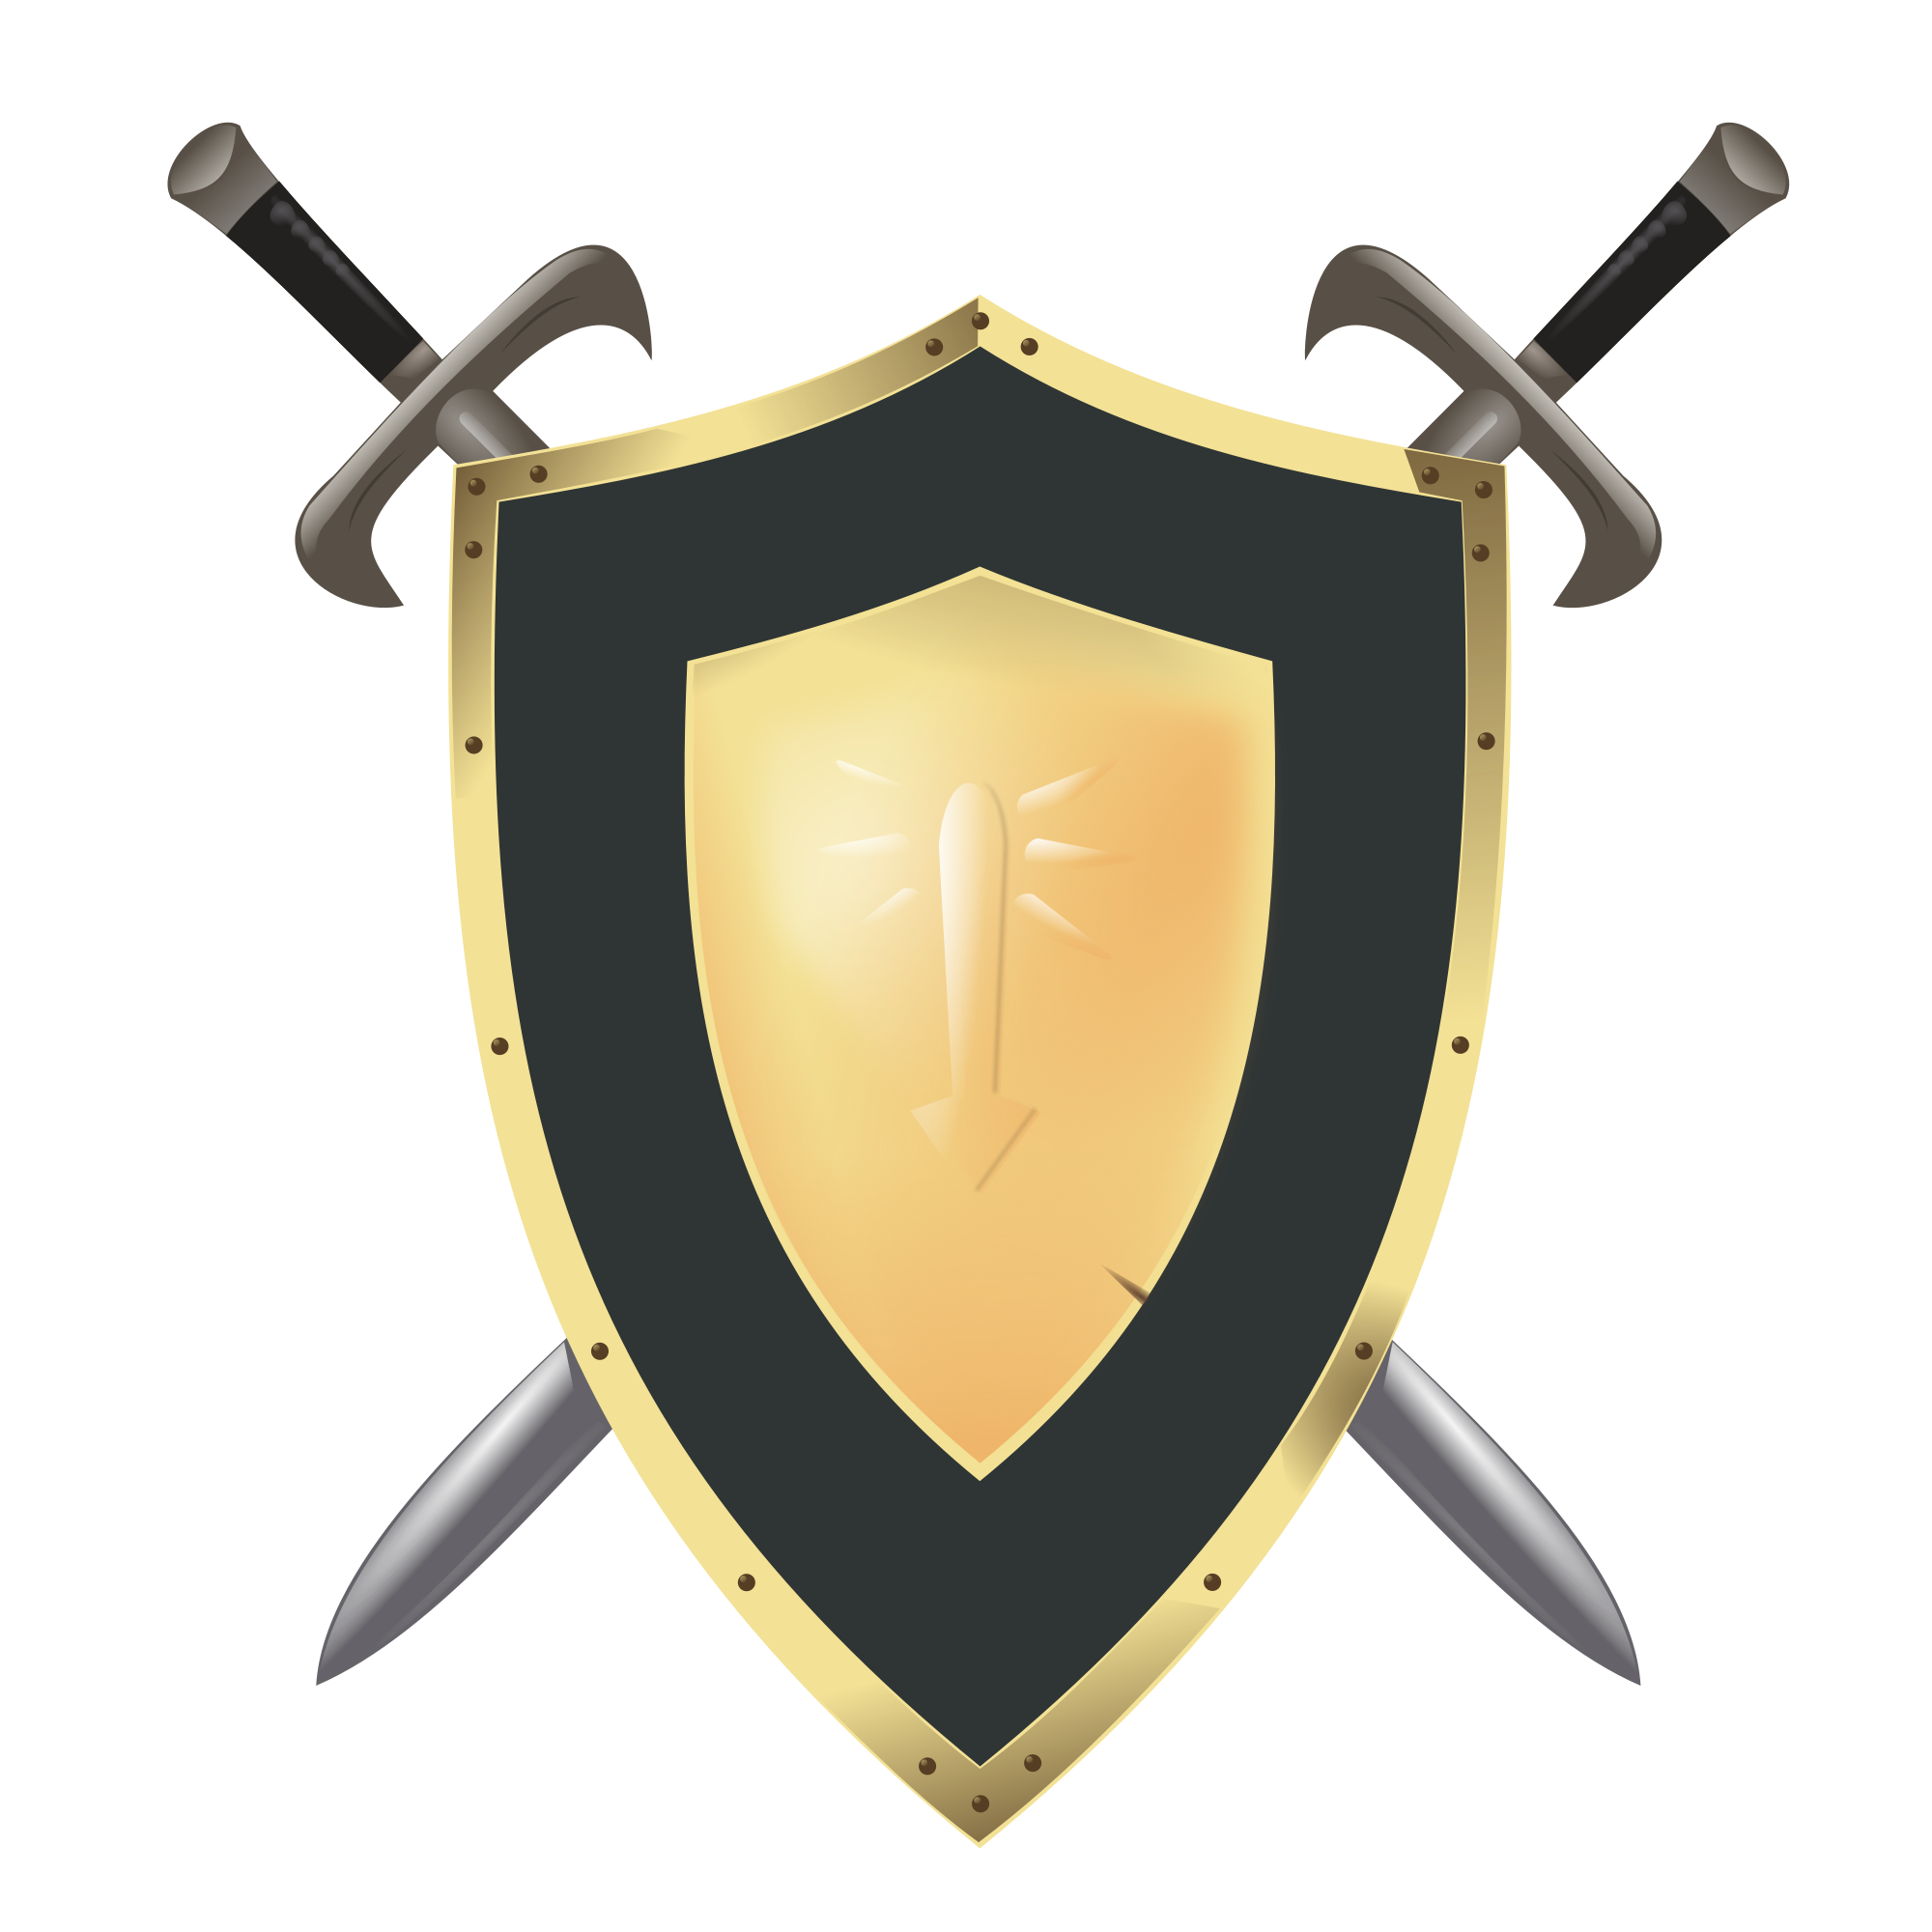 Clipart sword shield. File wesnoth svg wikimedia